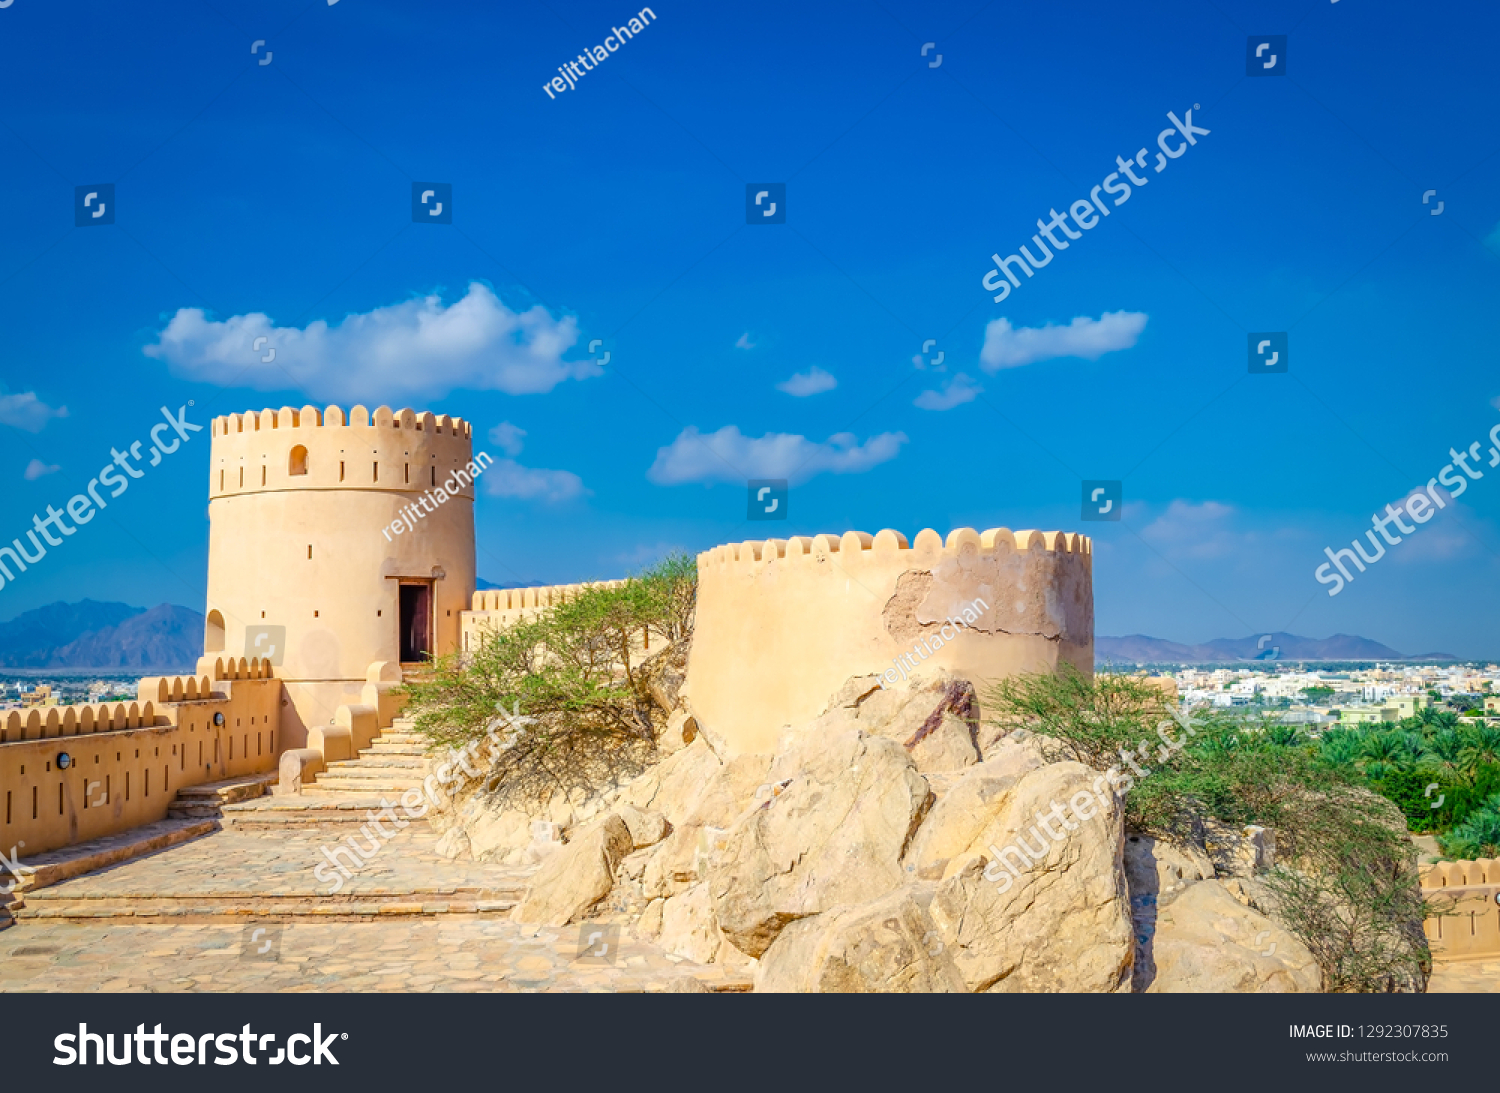 Turret of old, abandoned fort in Nakhal, Muscat, Oman on a clear and bright sunny day. Blue sky with minimal clouds and a desert oasis in the background.